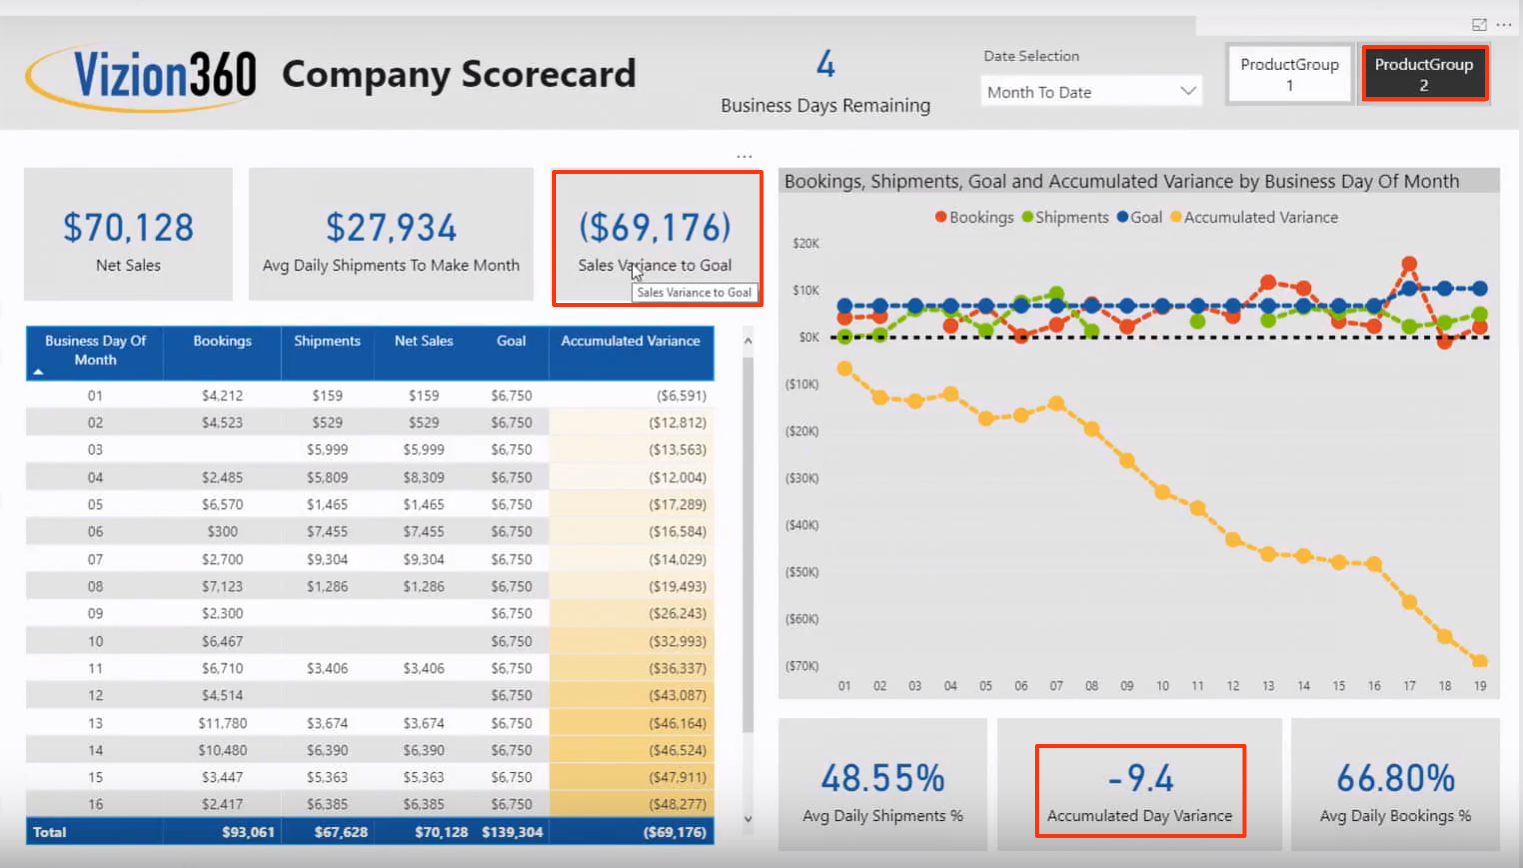 The Company Scorecard is a report/dashboard made for the CEO shows important data to make quick decisions. Data like: What product group is slowing down sales? How far down on sales are we this month? How many days behind are we in sales? Business Intelligence delivers insight into data.